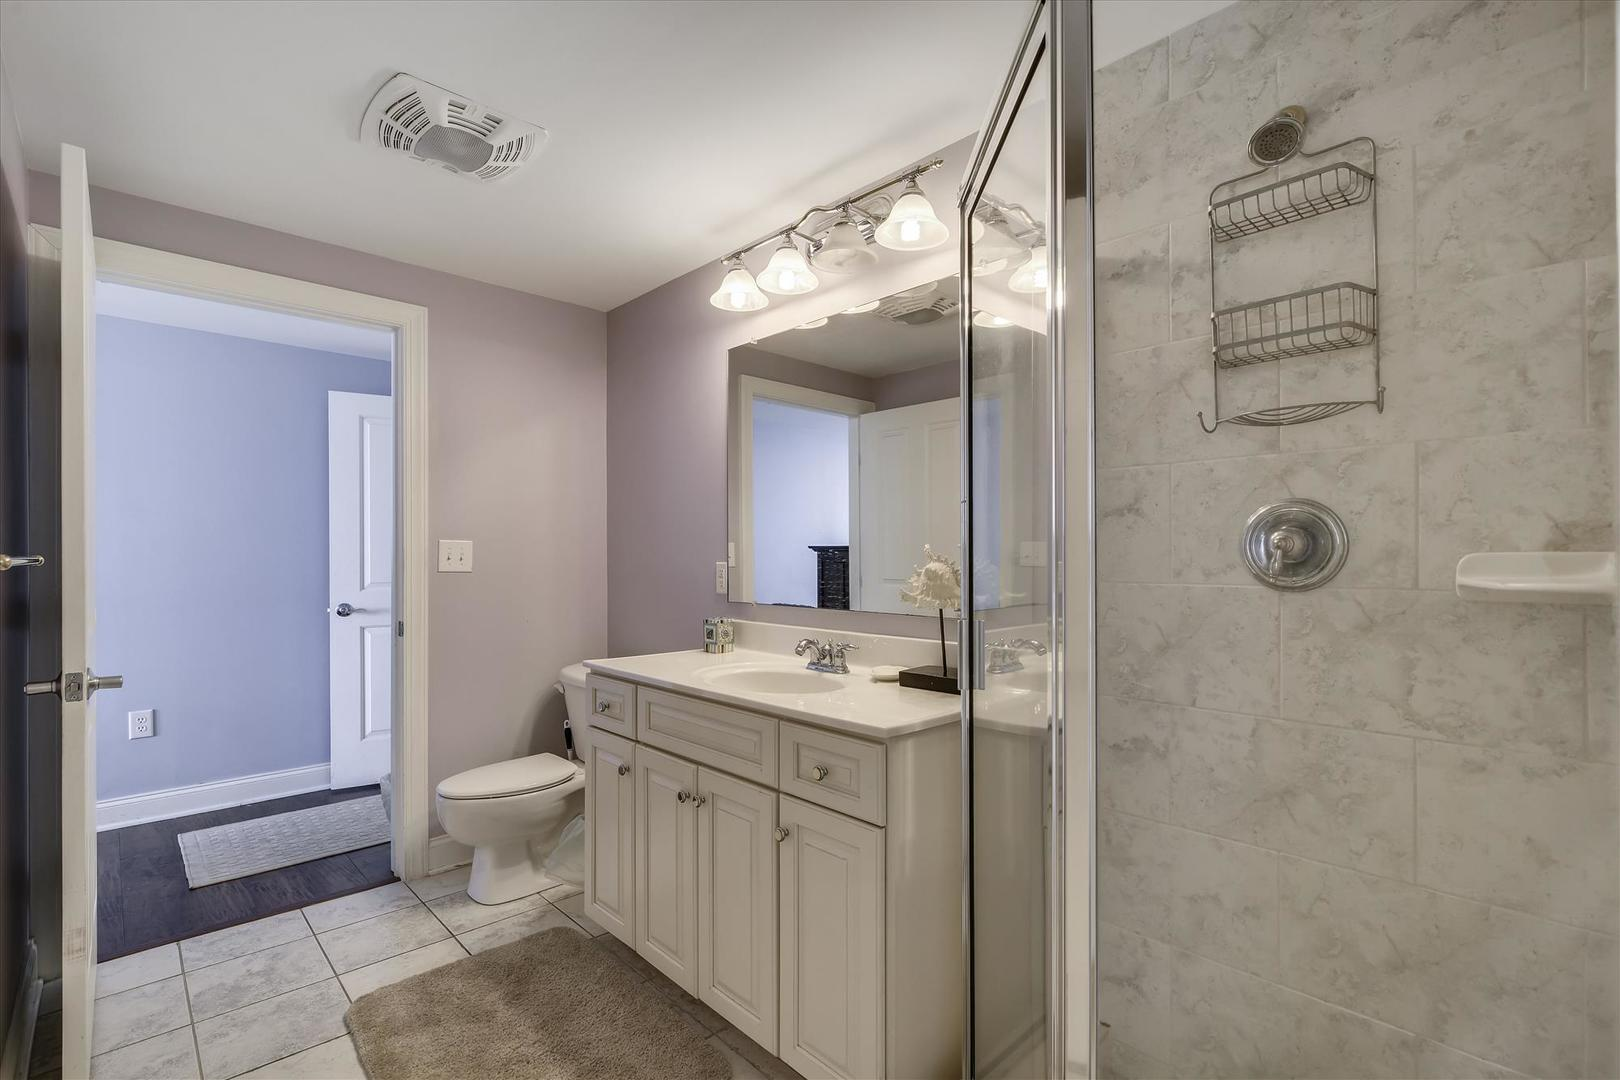 Belmont Towers 707 - Bathroom 2